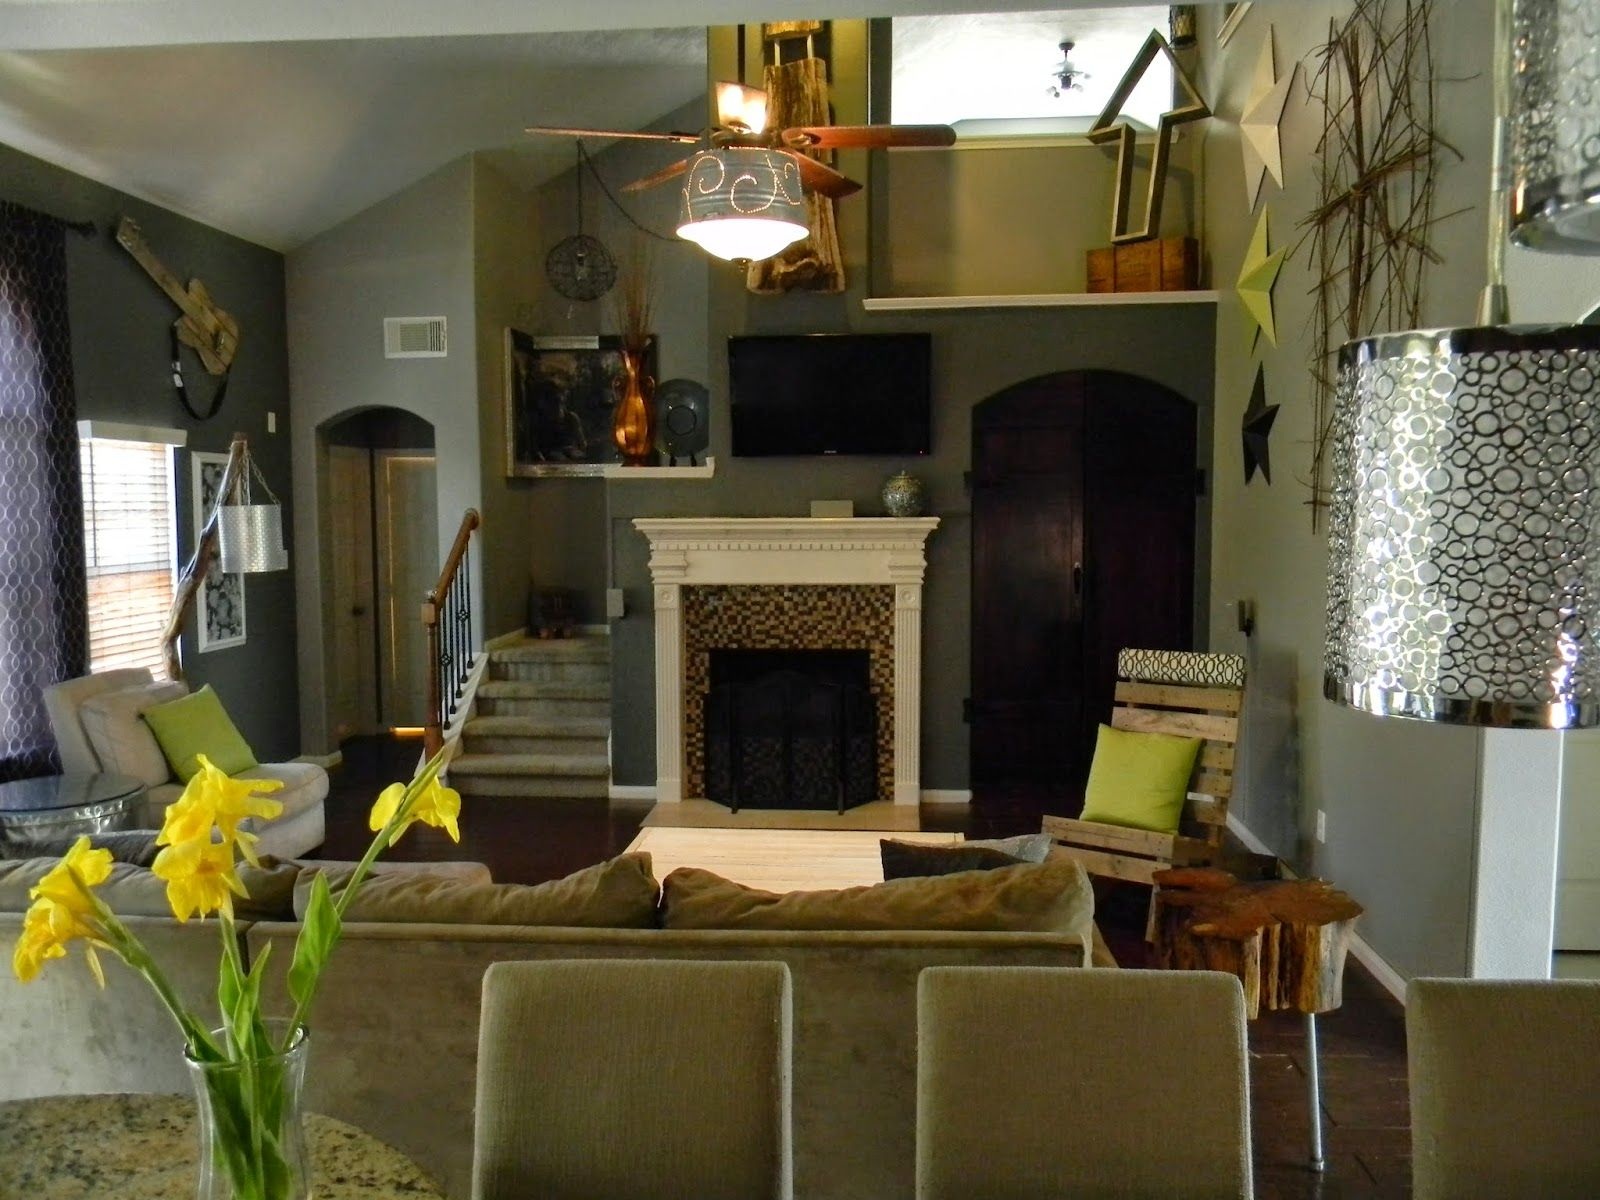 Thetadbiteclectic Urban Upccyclers And Design Project Gallery Suburban Home Eclectic Style